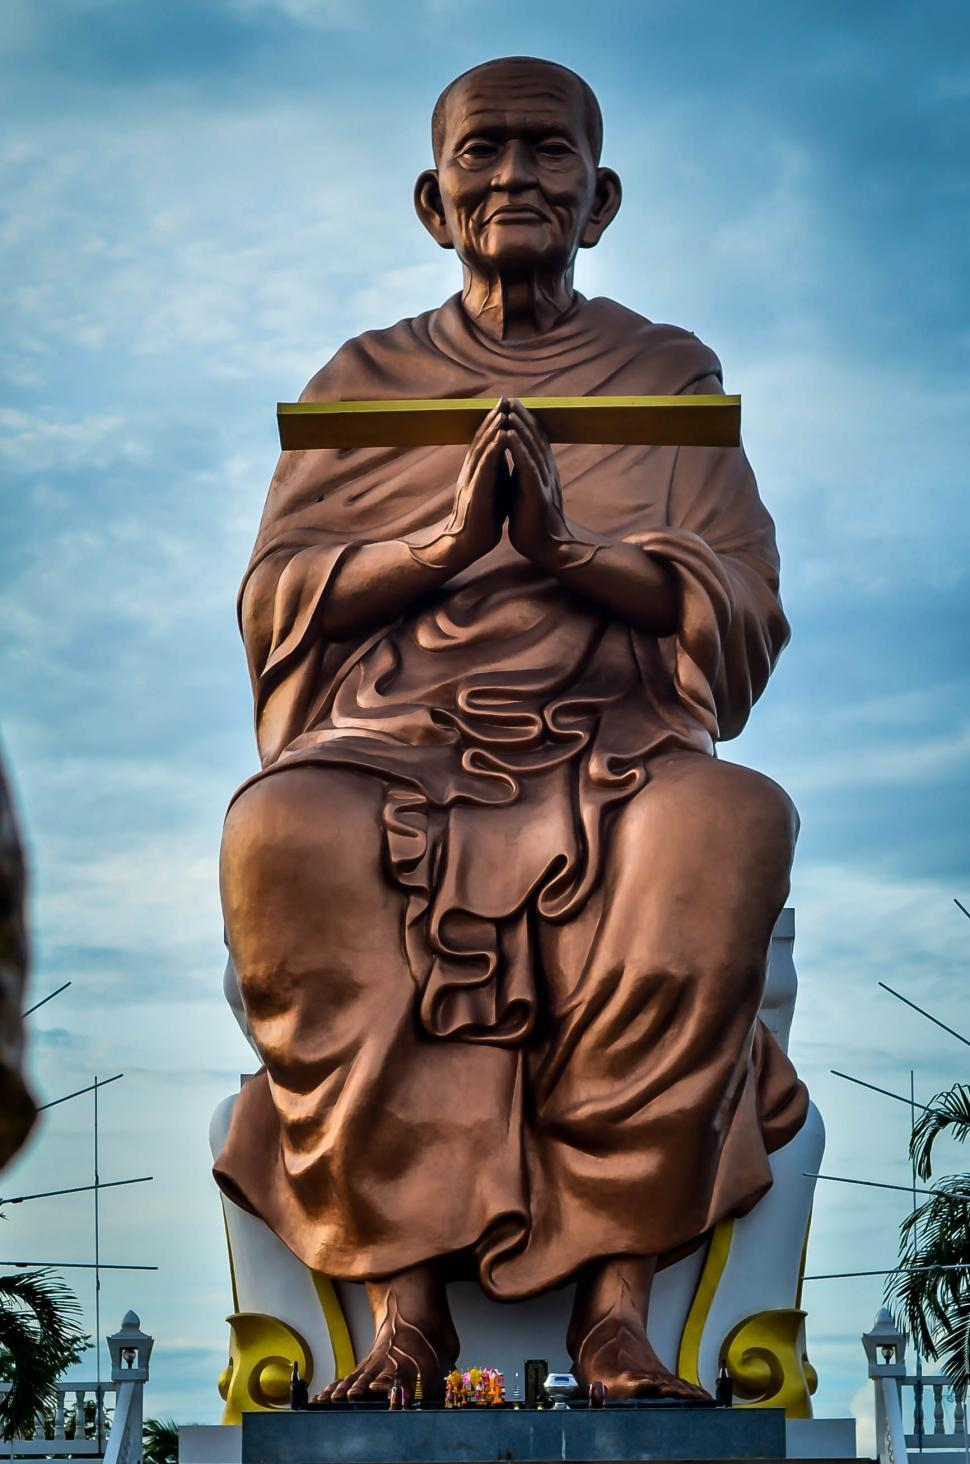 Download Free Stock HD Photo of Sculpture of Monk in Thailand  Online